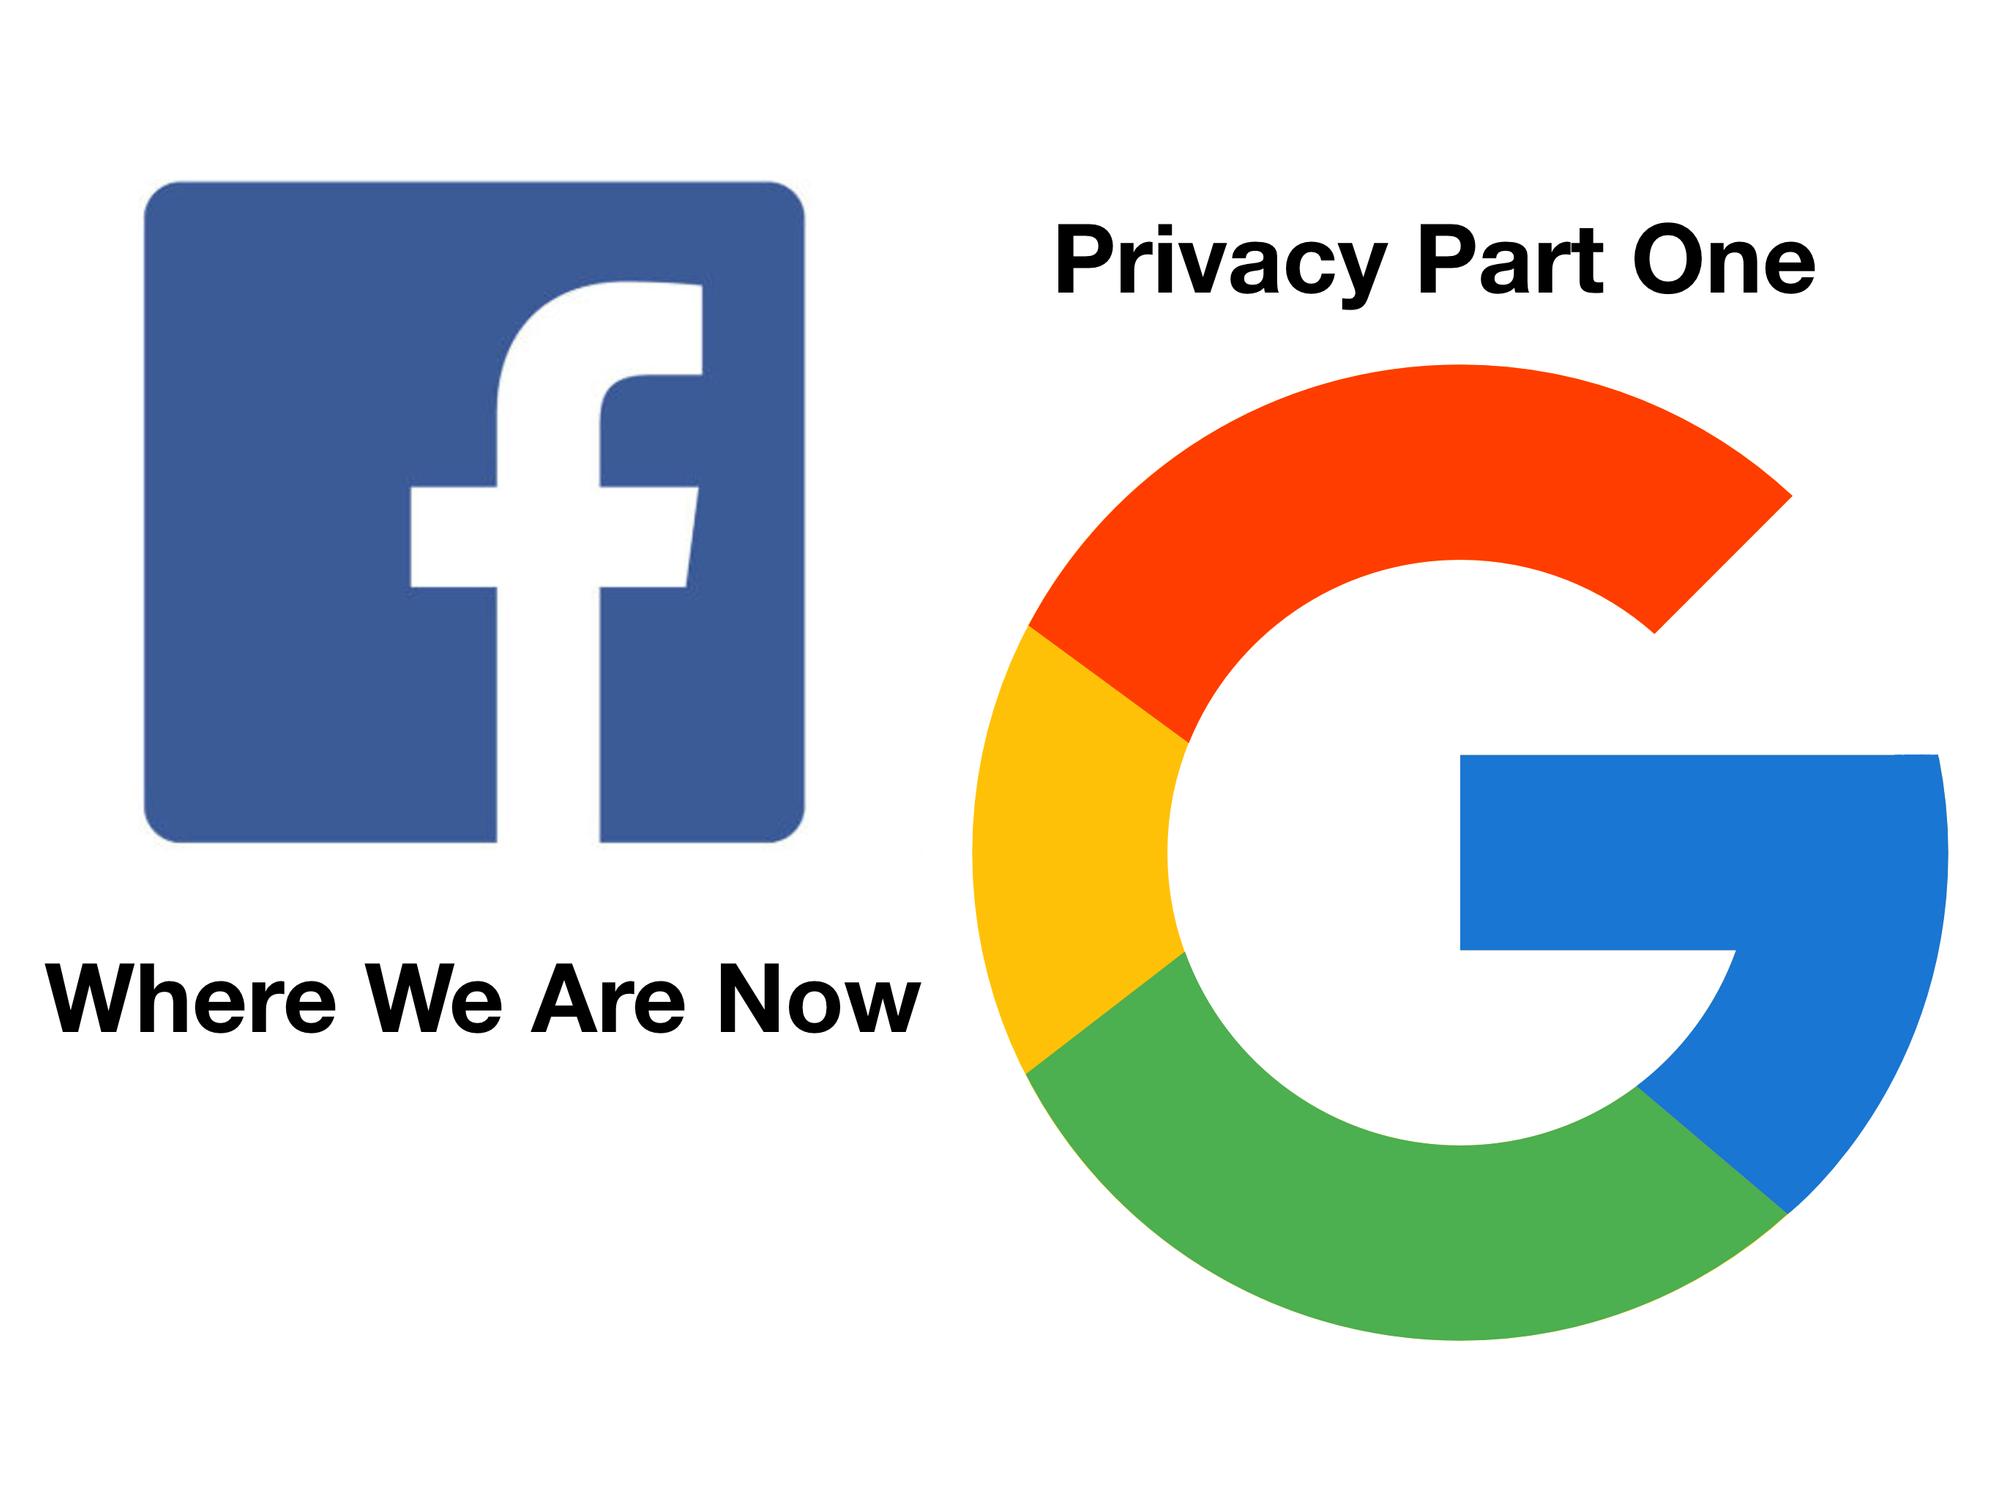 Privacy 2019 Part One: Where We Are Now